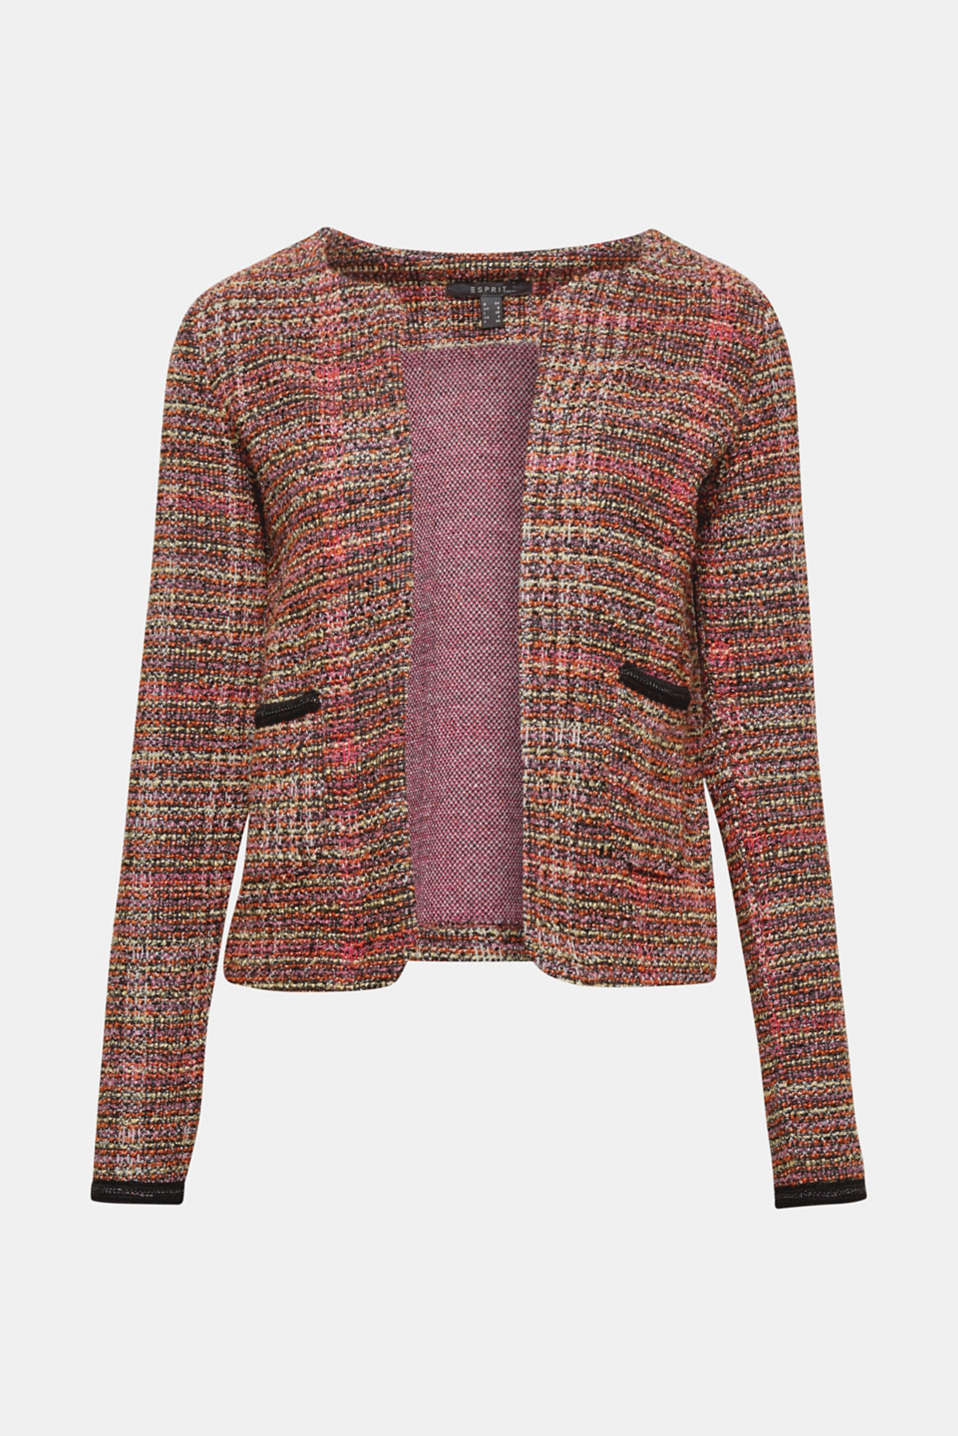 Casual chic: Open bouclé jacket with fine, decorative chains and patch pockets